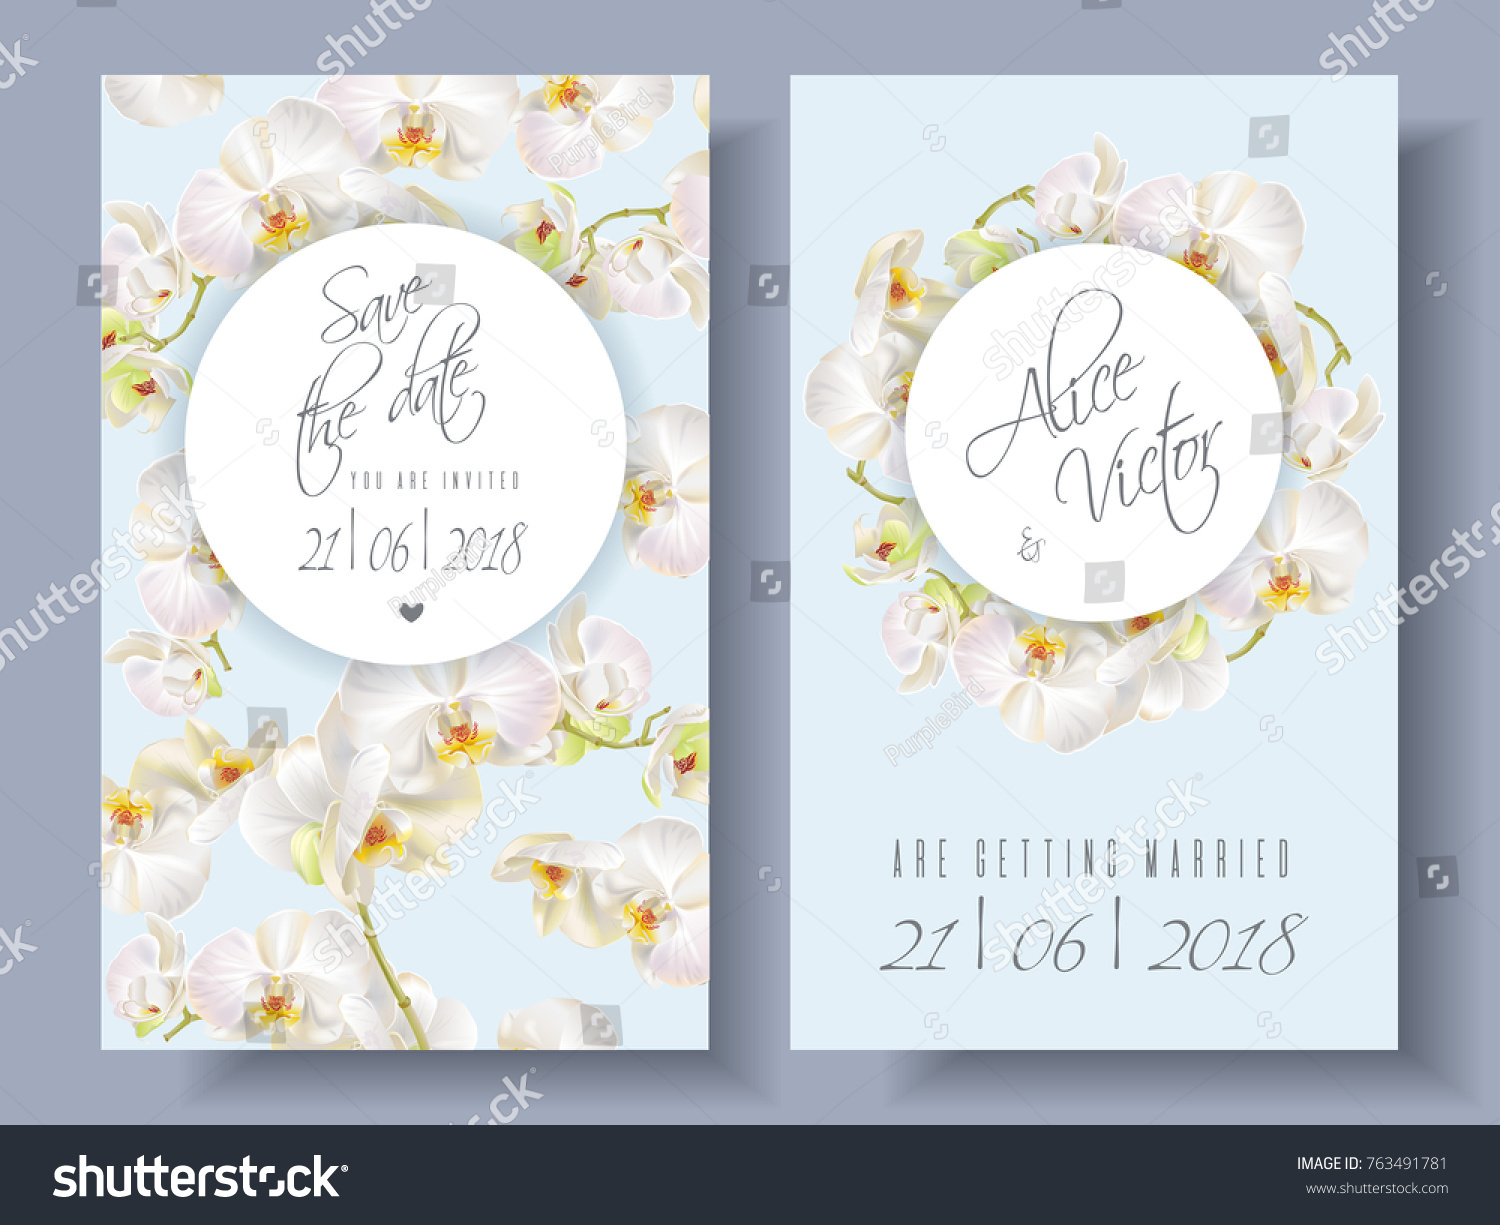 Vector Wedding Invitation Cards White Orchid Stock Photo (Photo ...